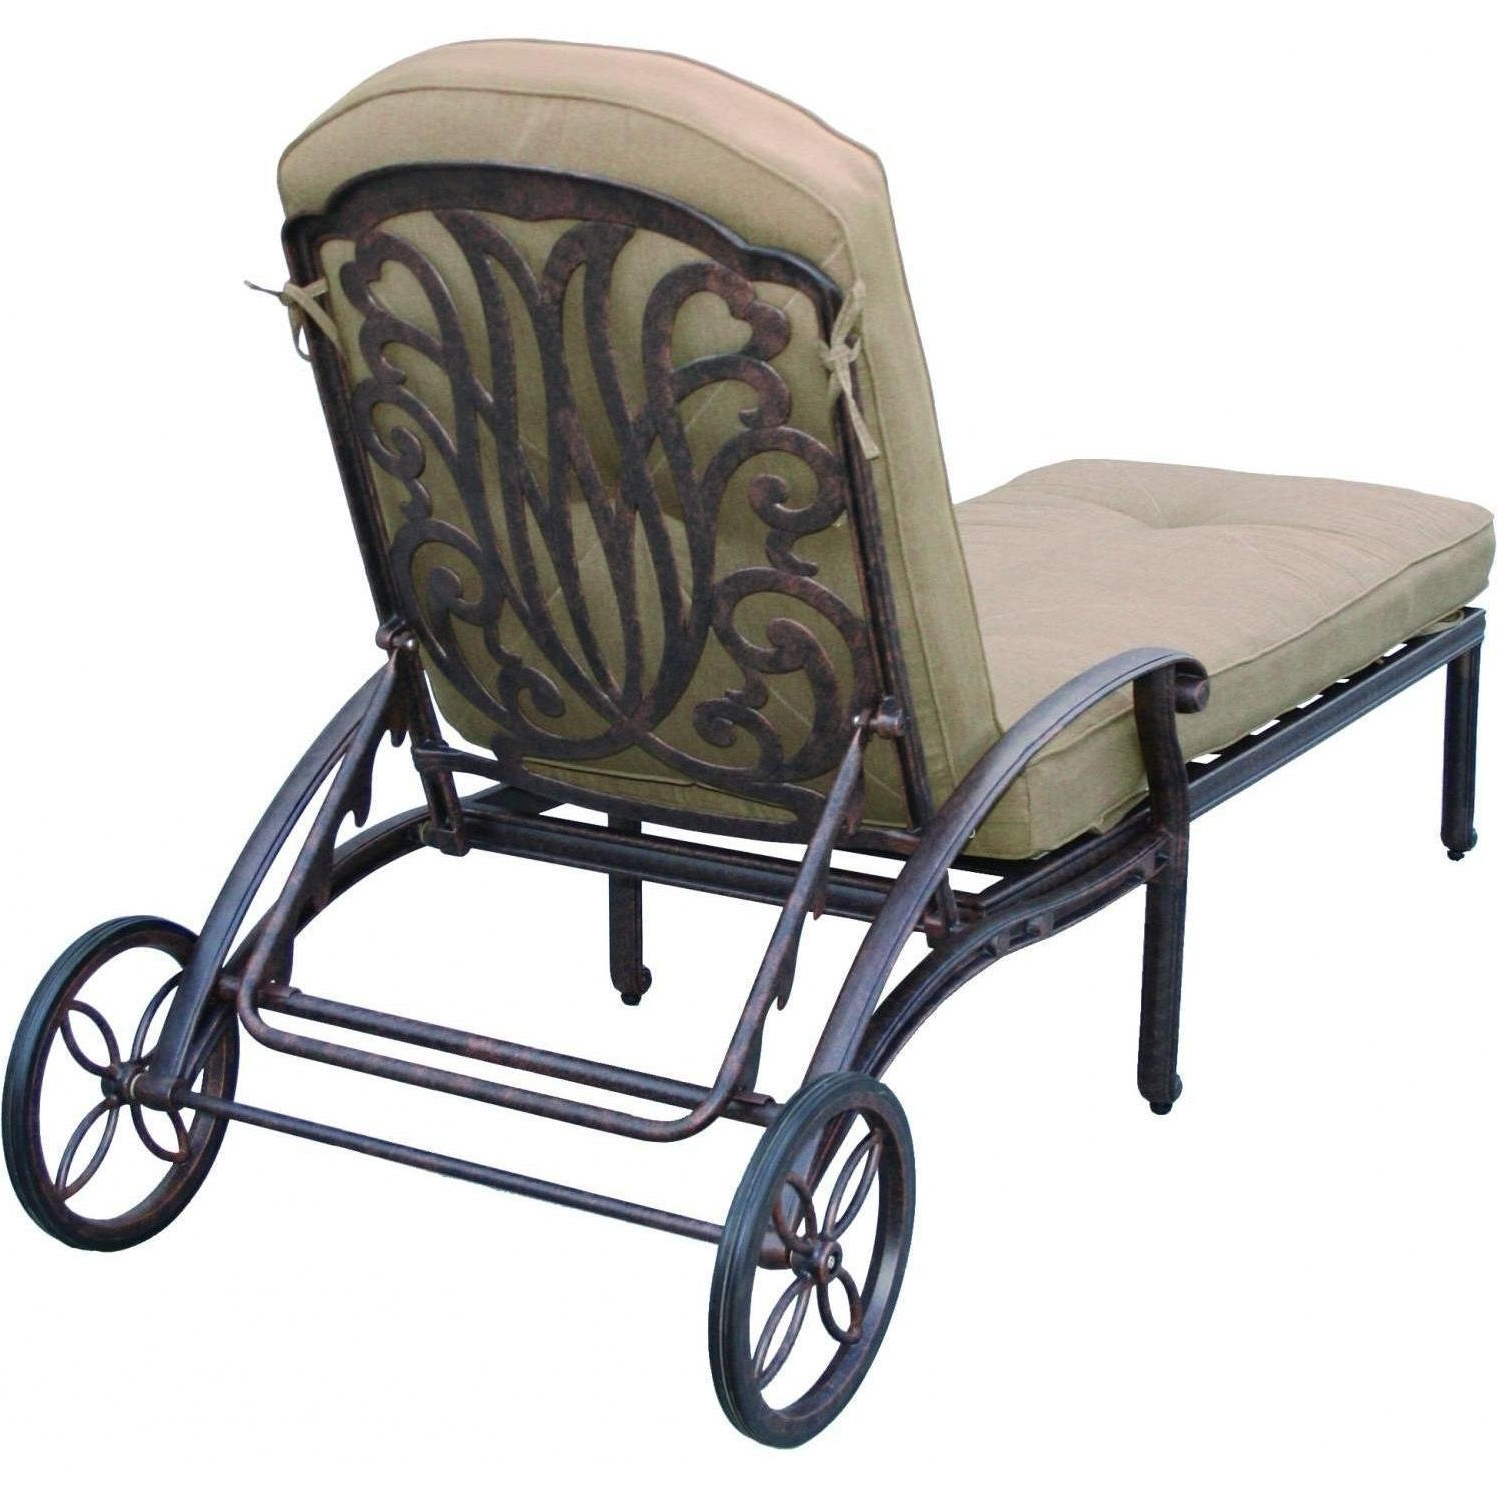 Outdoor Cast Aluminum Chaise Lounge Chairs Within 2018 Darlee Elisabeth Cast Aluminum Patio Chaise Lounge : Ultimate Patio (View 11 of 15)